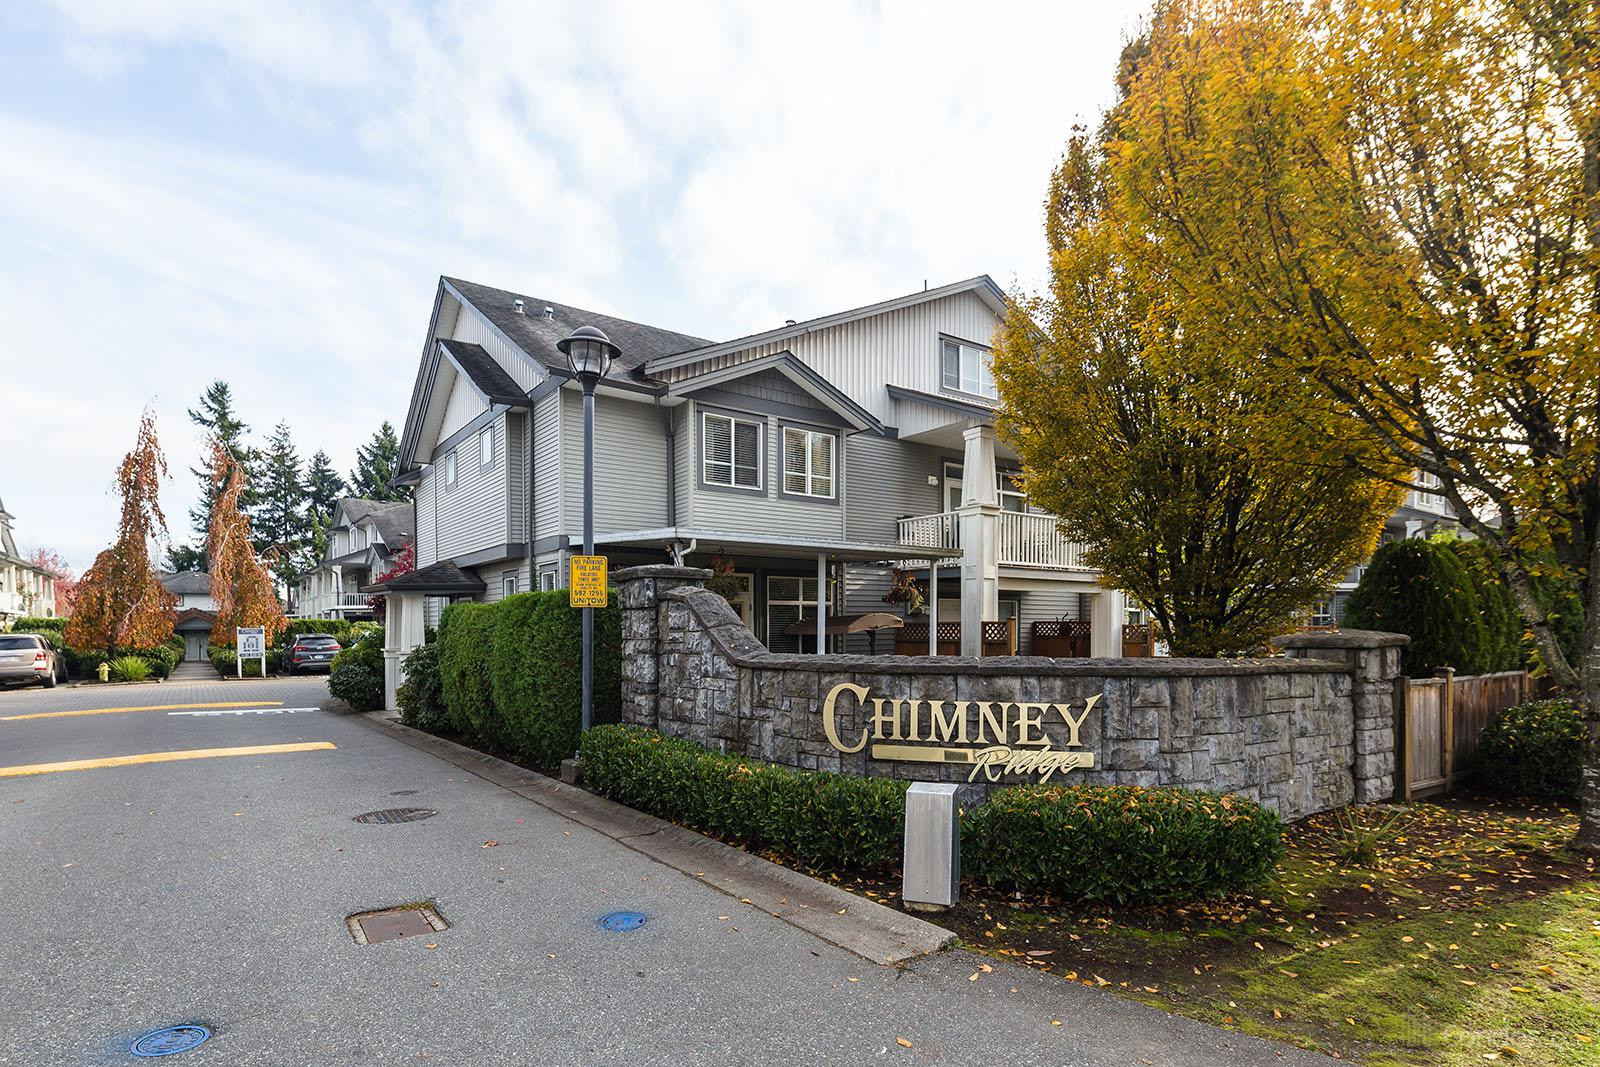 Chimney Ridge at 7250 144 St, Surrey 1